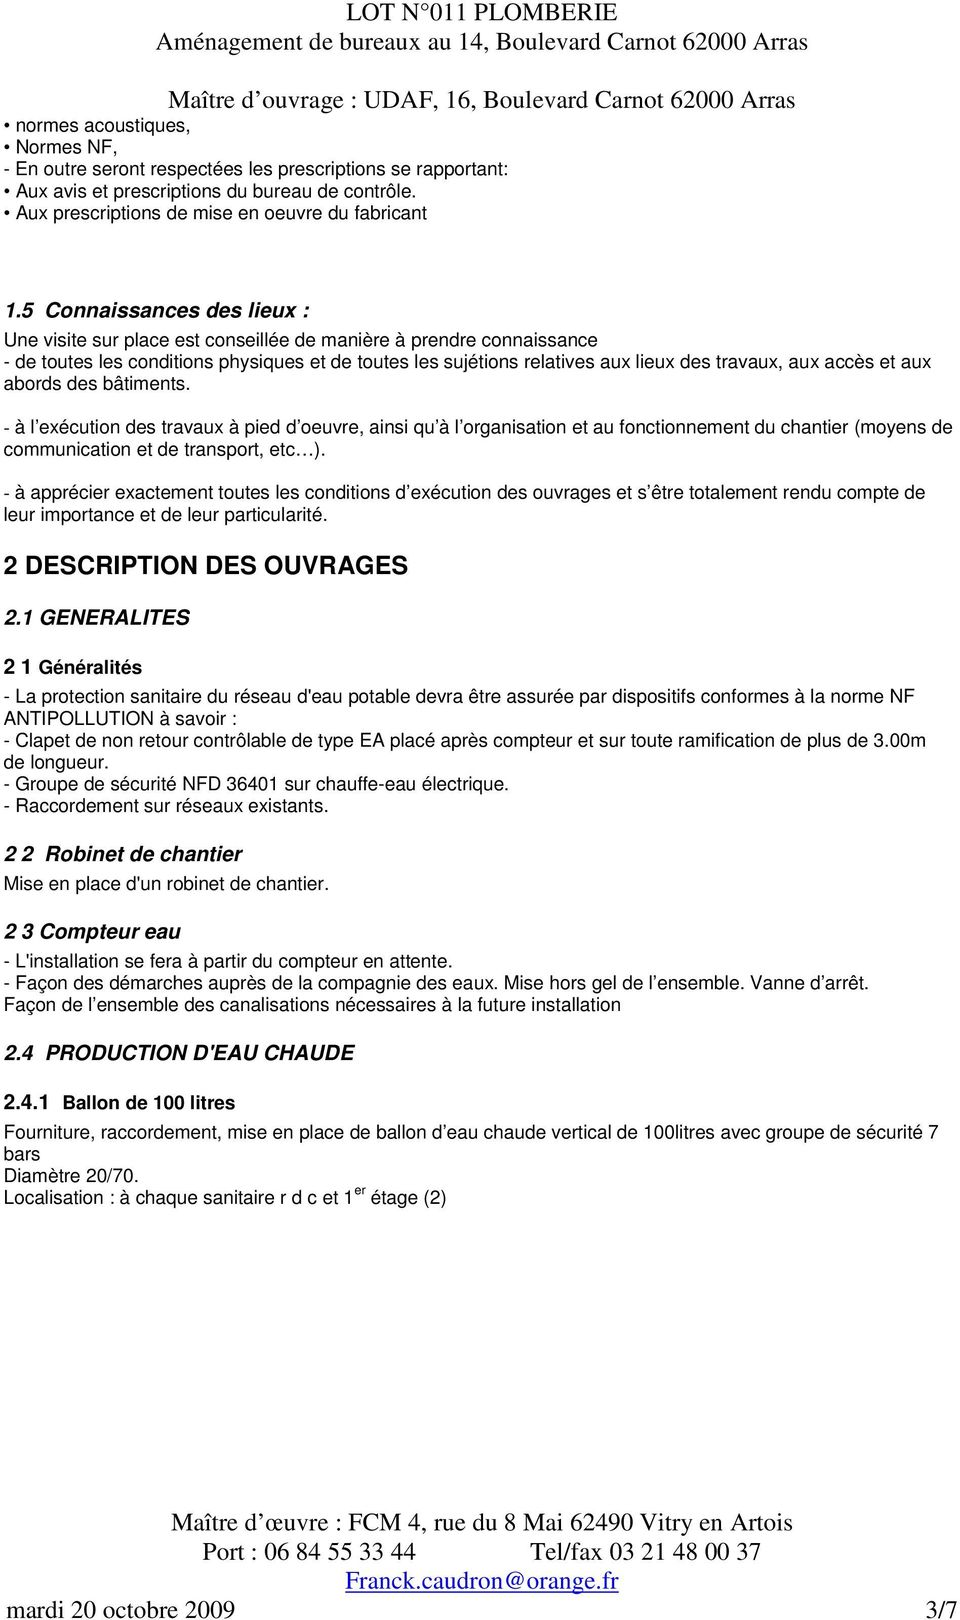 Dossier Dce Cctp Plomberie Pdf